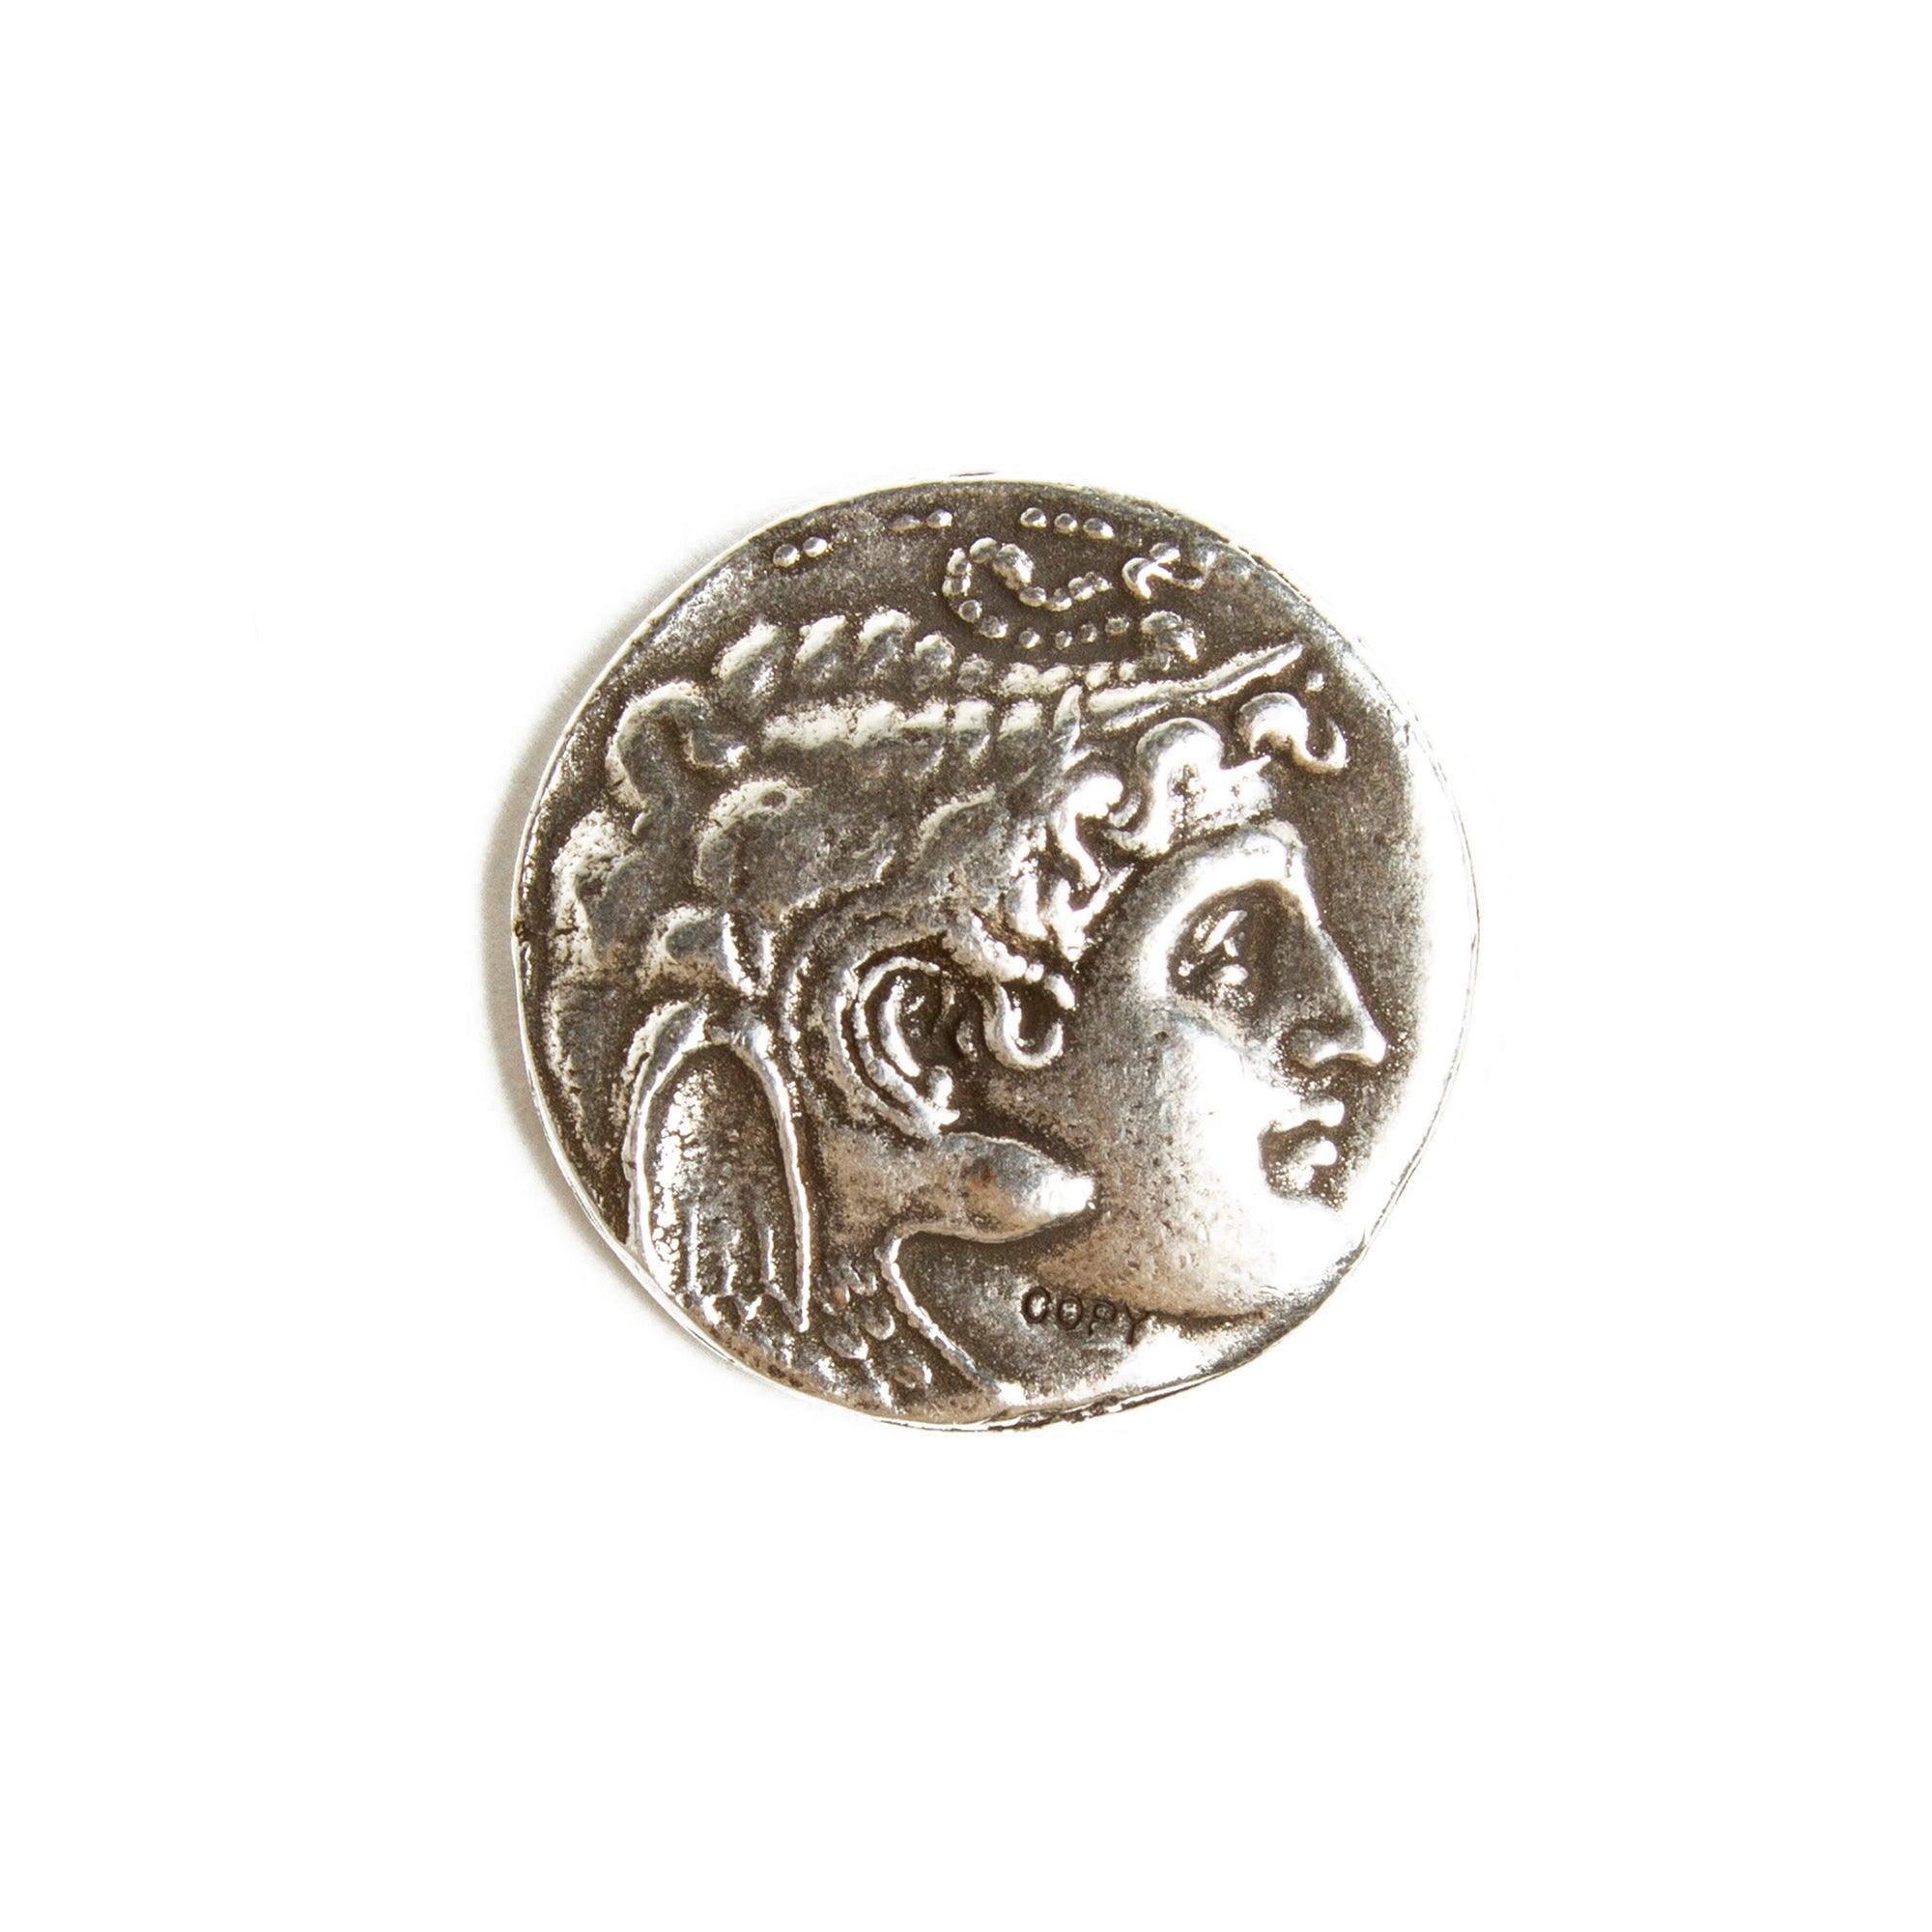 Greek Coin Reproduction - Ptolemy/Alexander the Great